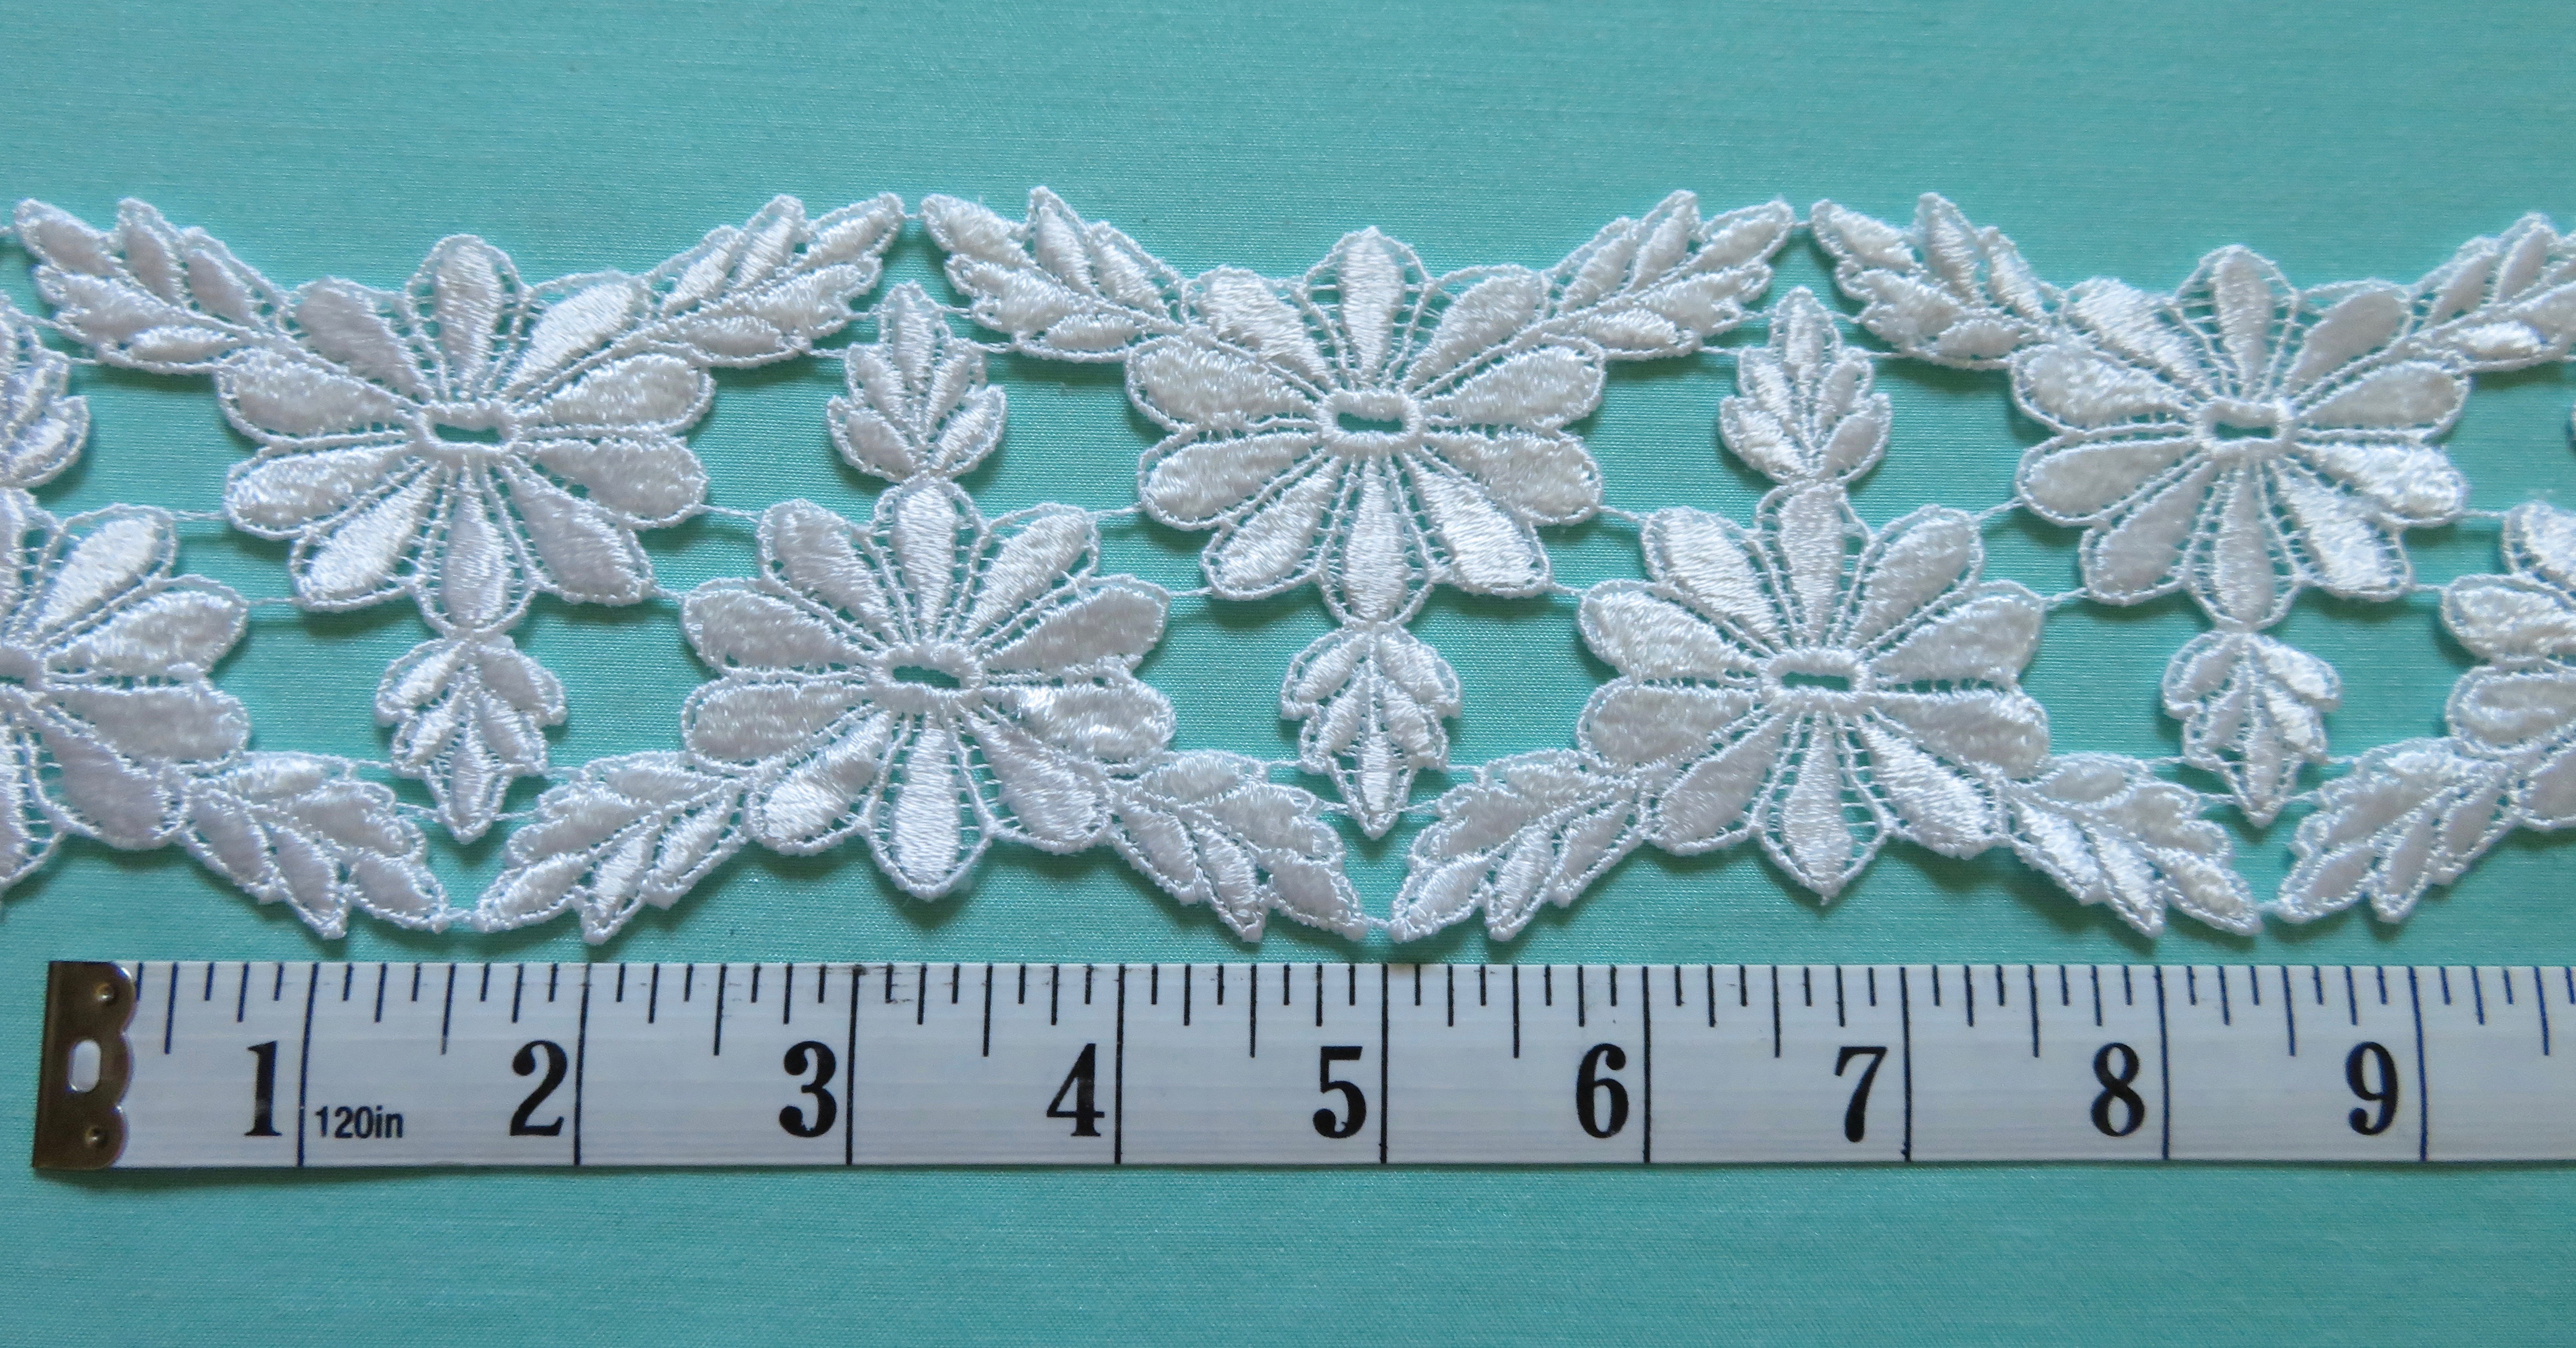 White Floral Venise Lace Trim 3//8 wide Pink price for 1 yard